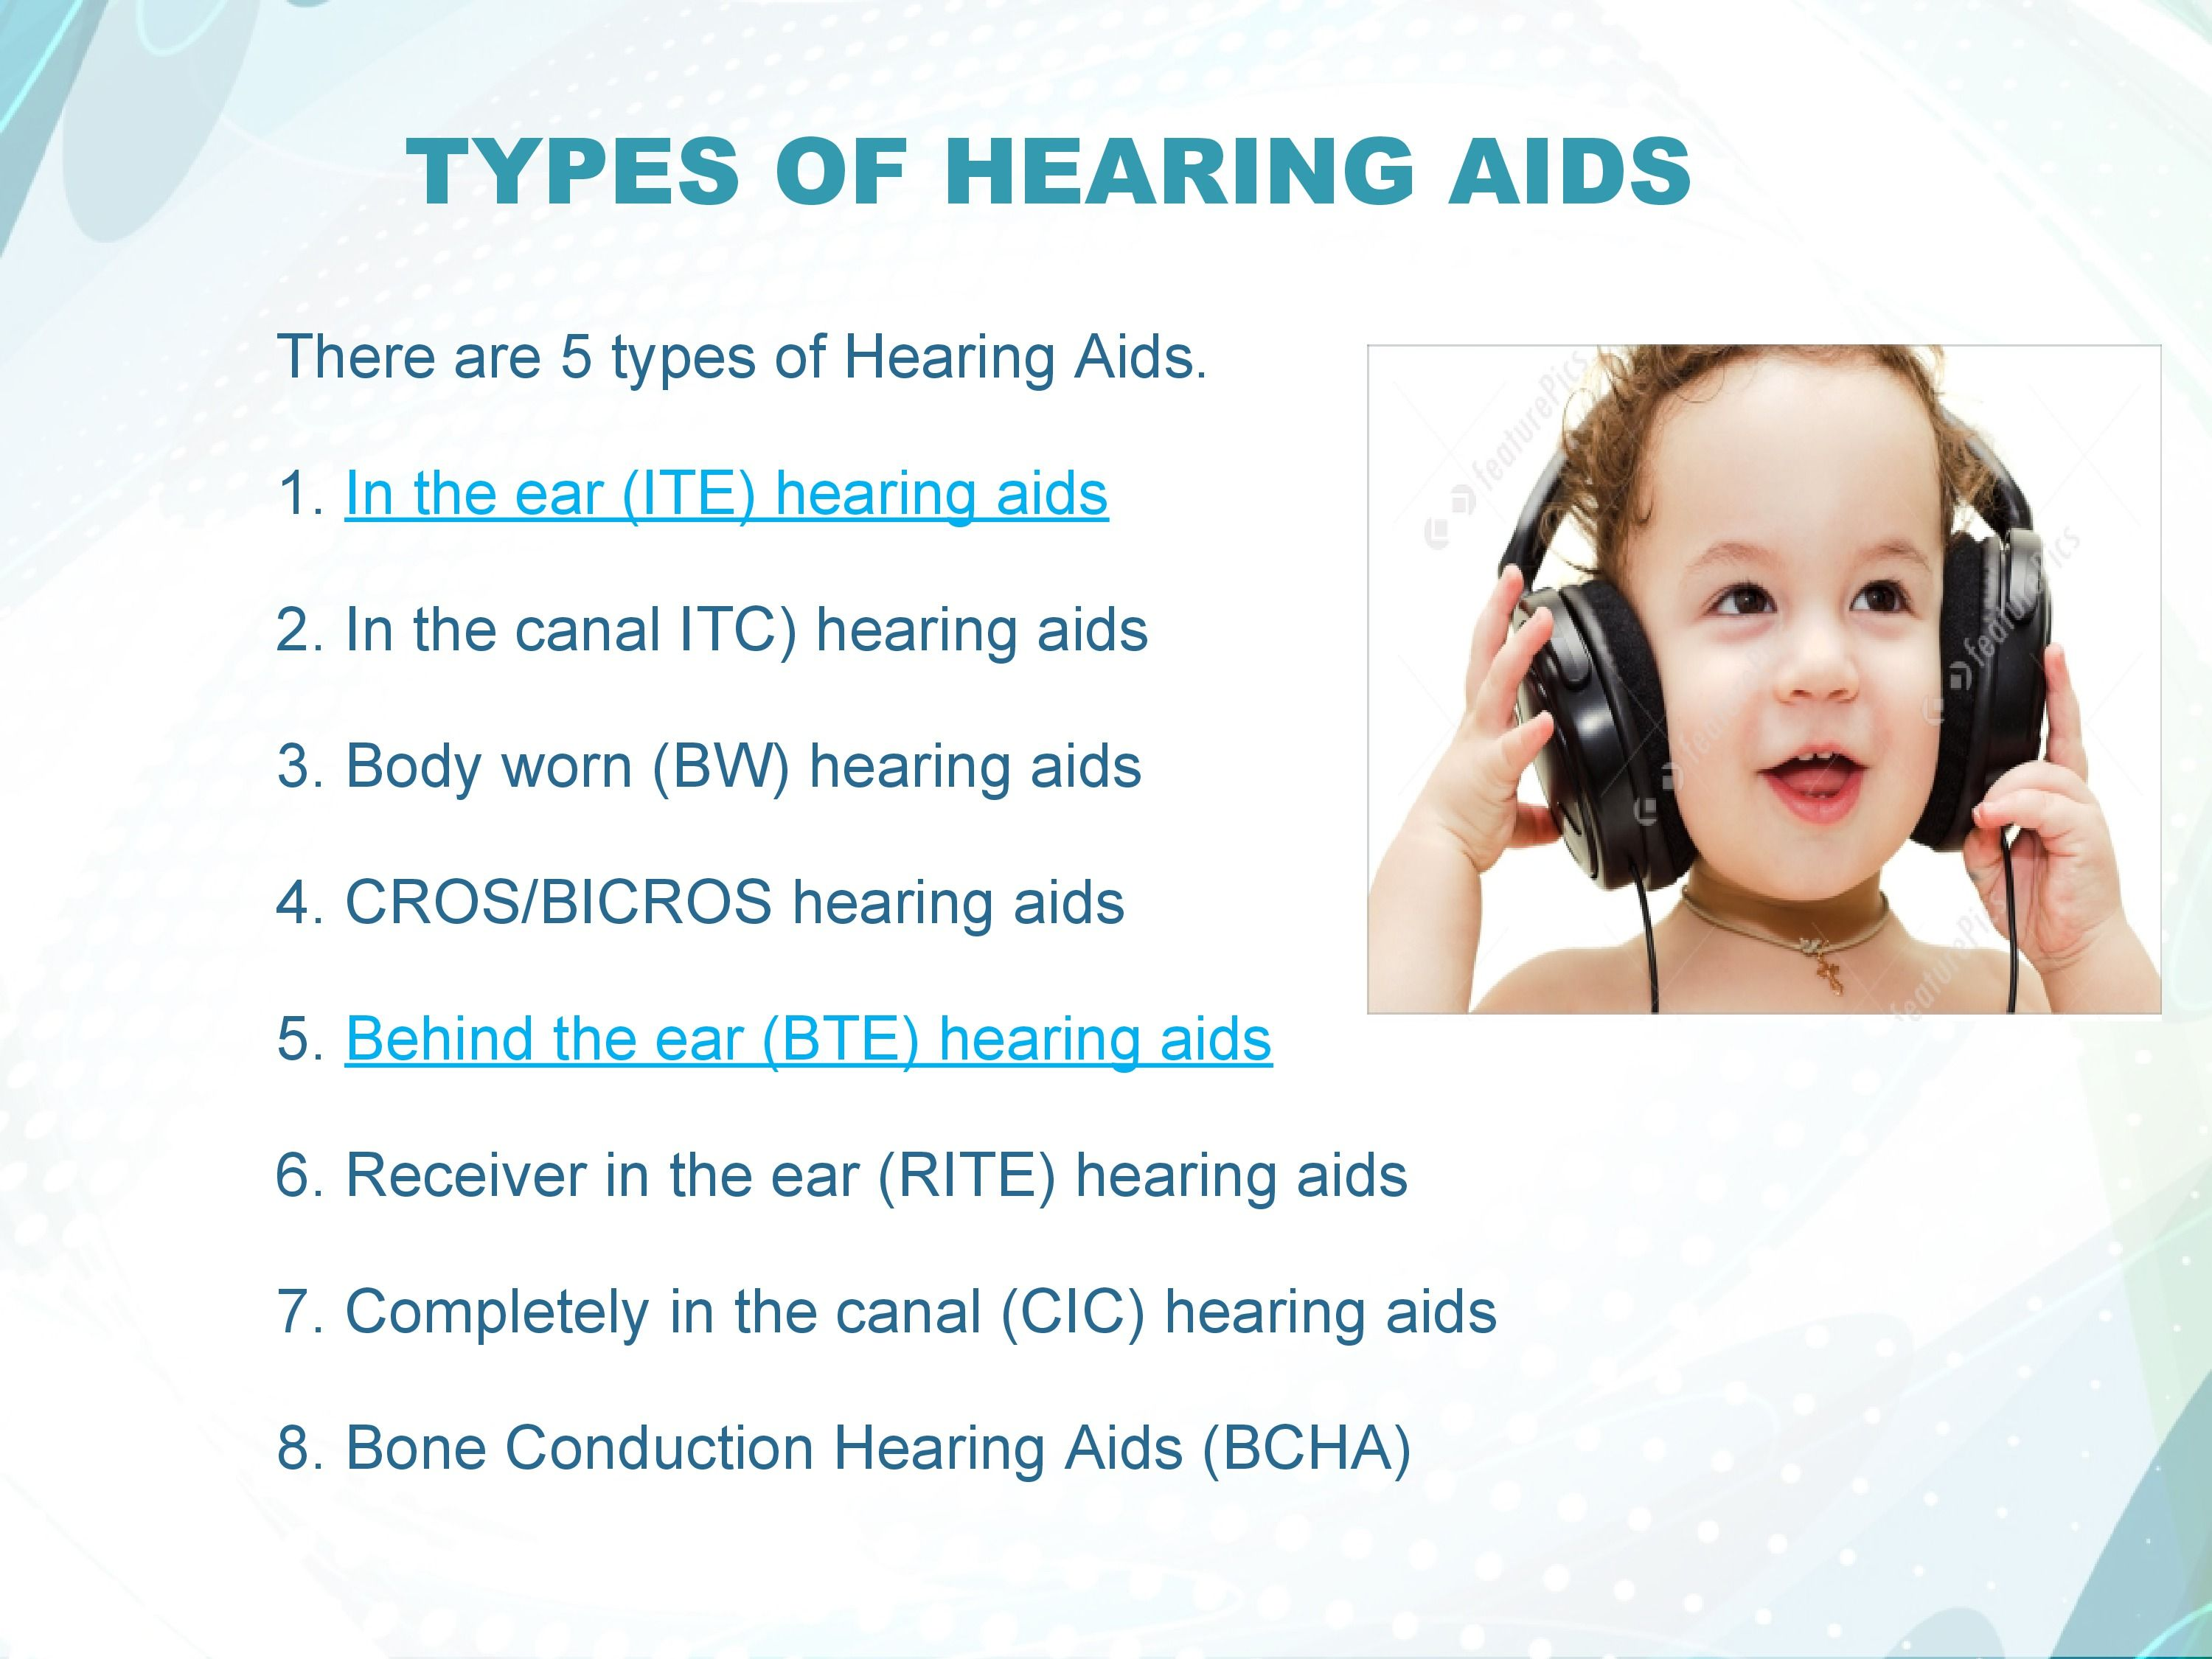 Hearing loss problem occurs due to the high volume and